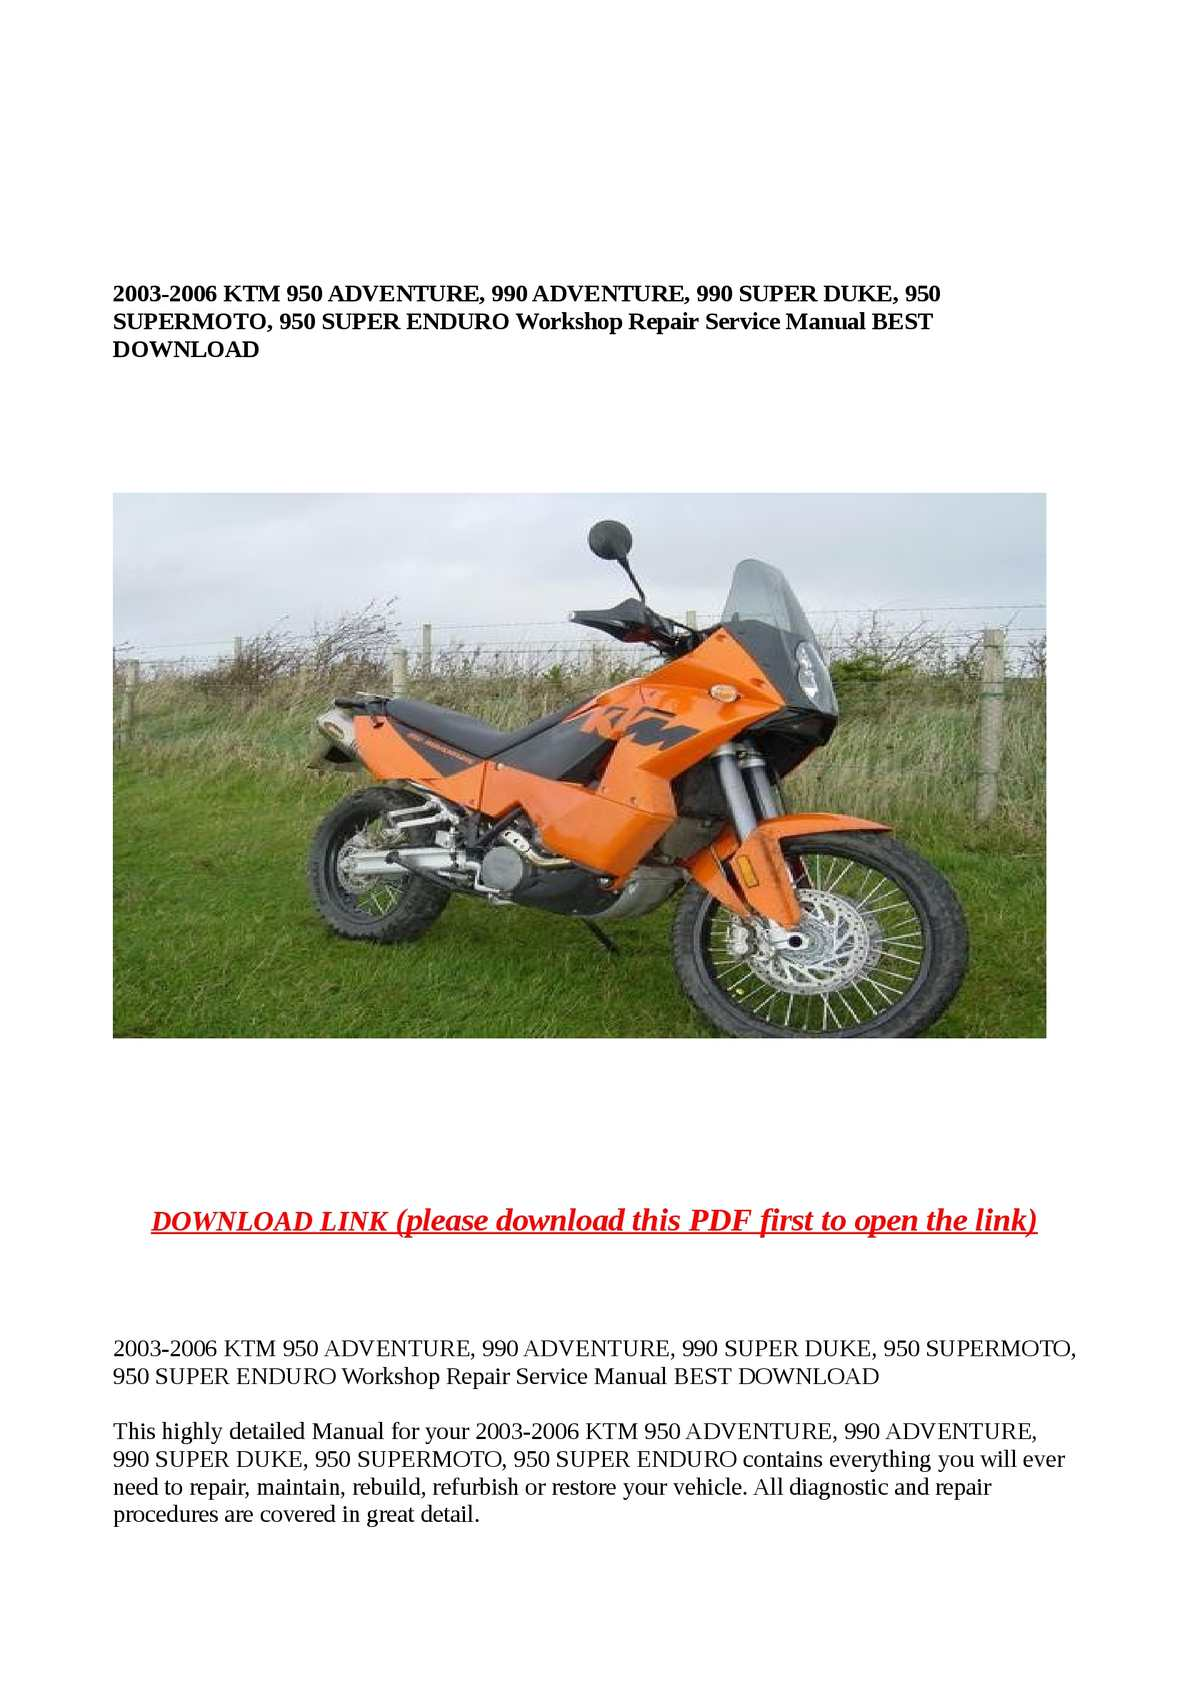 Calamo 2003 2006 Ktm 950 Adventure 990 Super Duke Case Wiring Diagram Supermoto Enduro Workshop Repair Service Manual Best Download